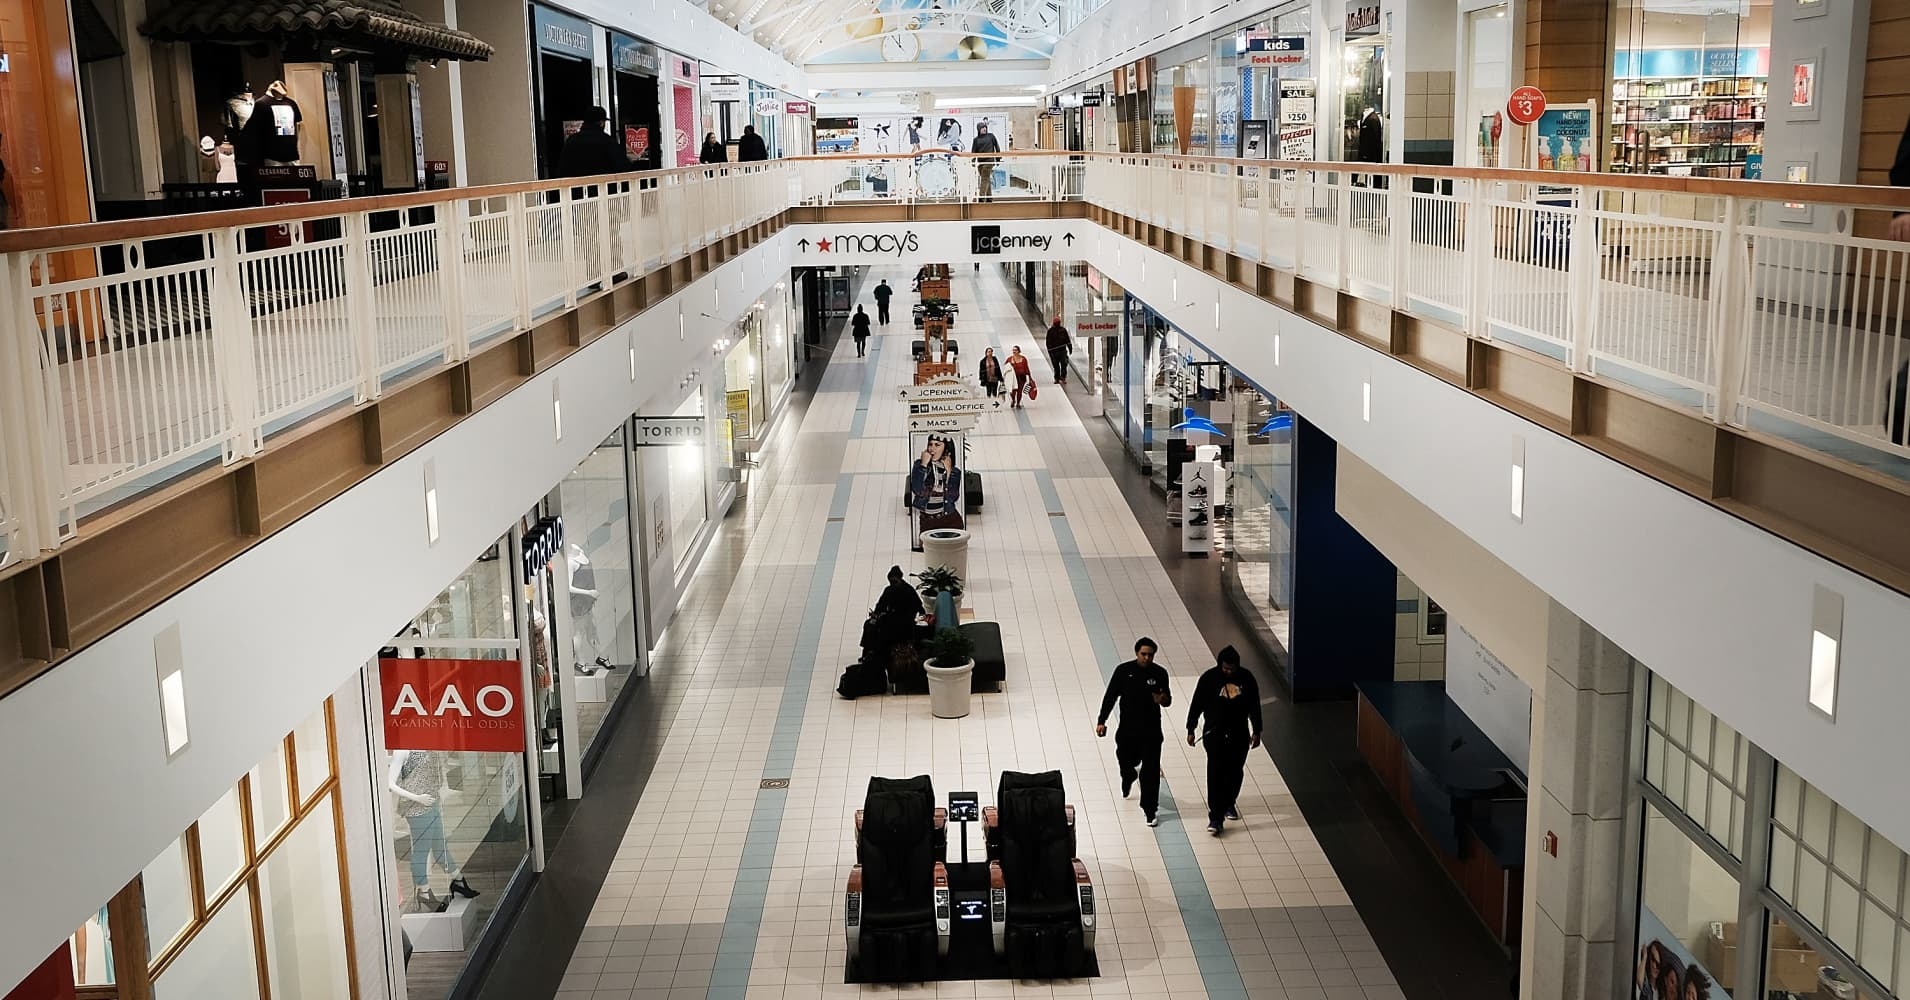 Hundreds of retailers aren't renewing leases, putting malls at risk